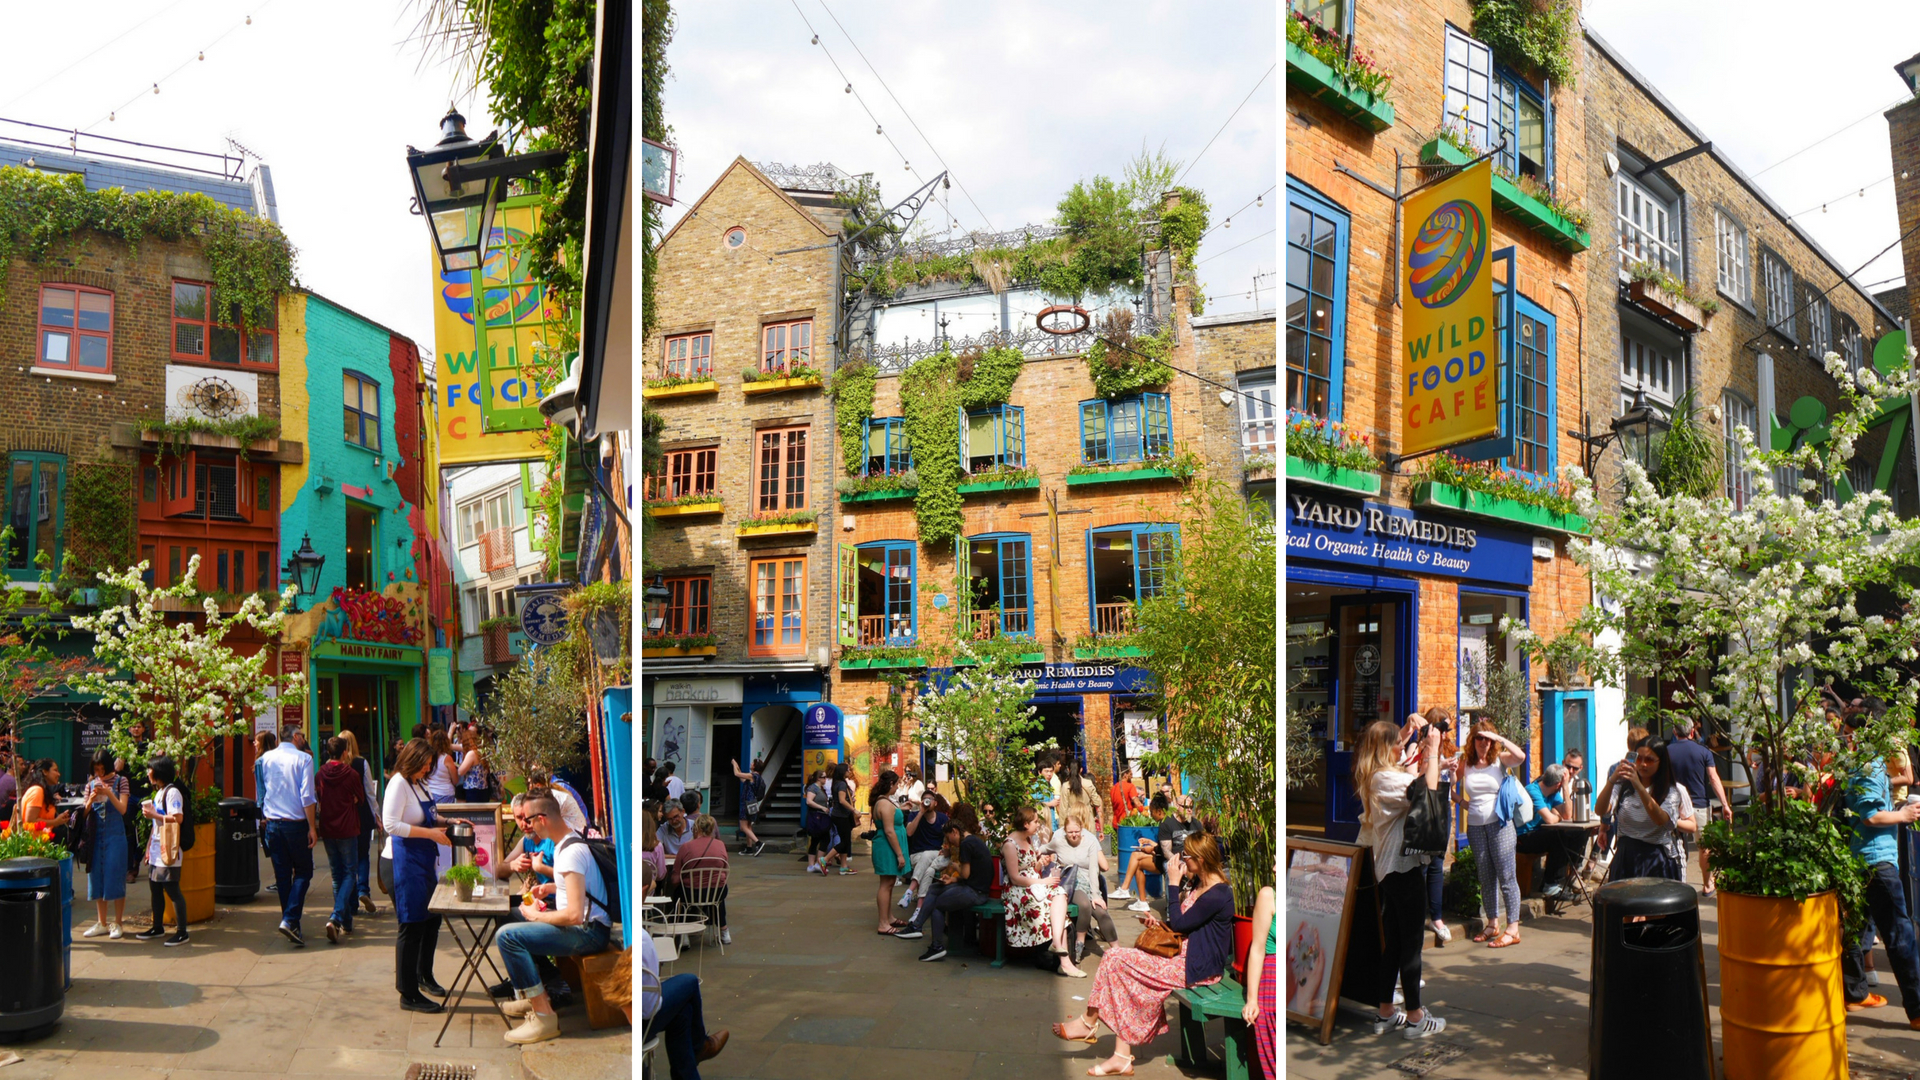 Neal's yard montage covent garden londres